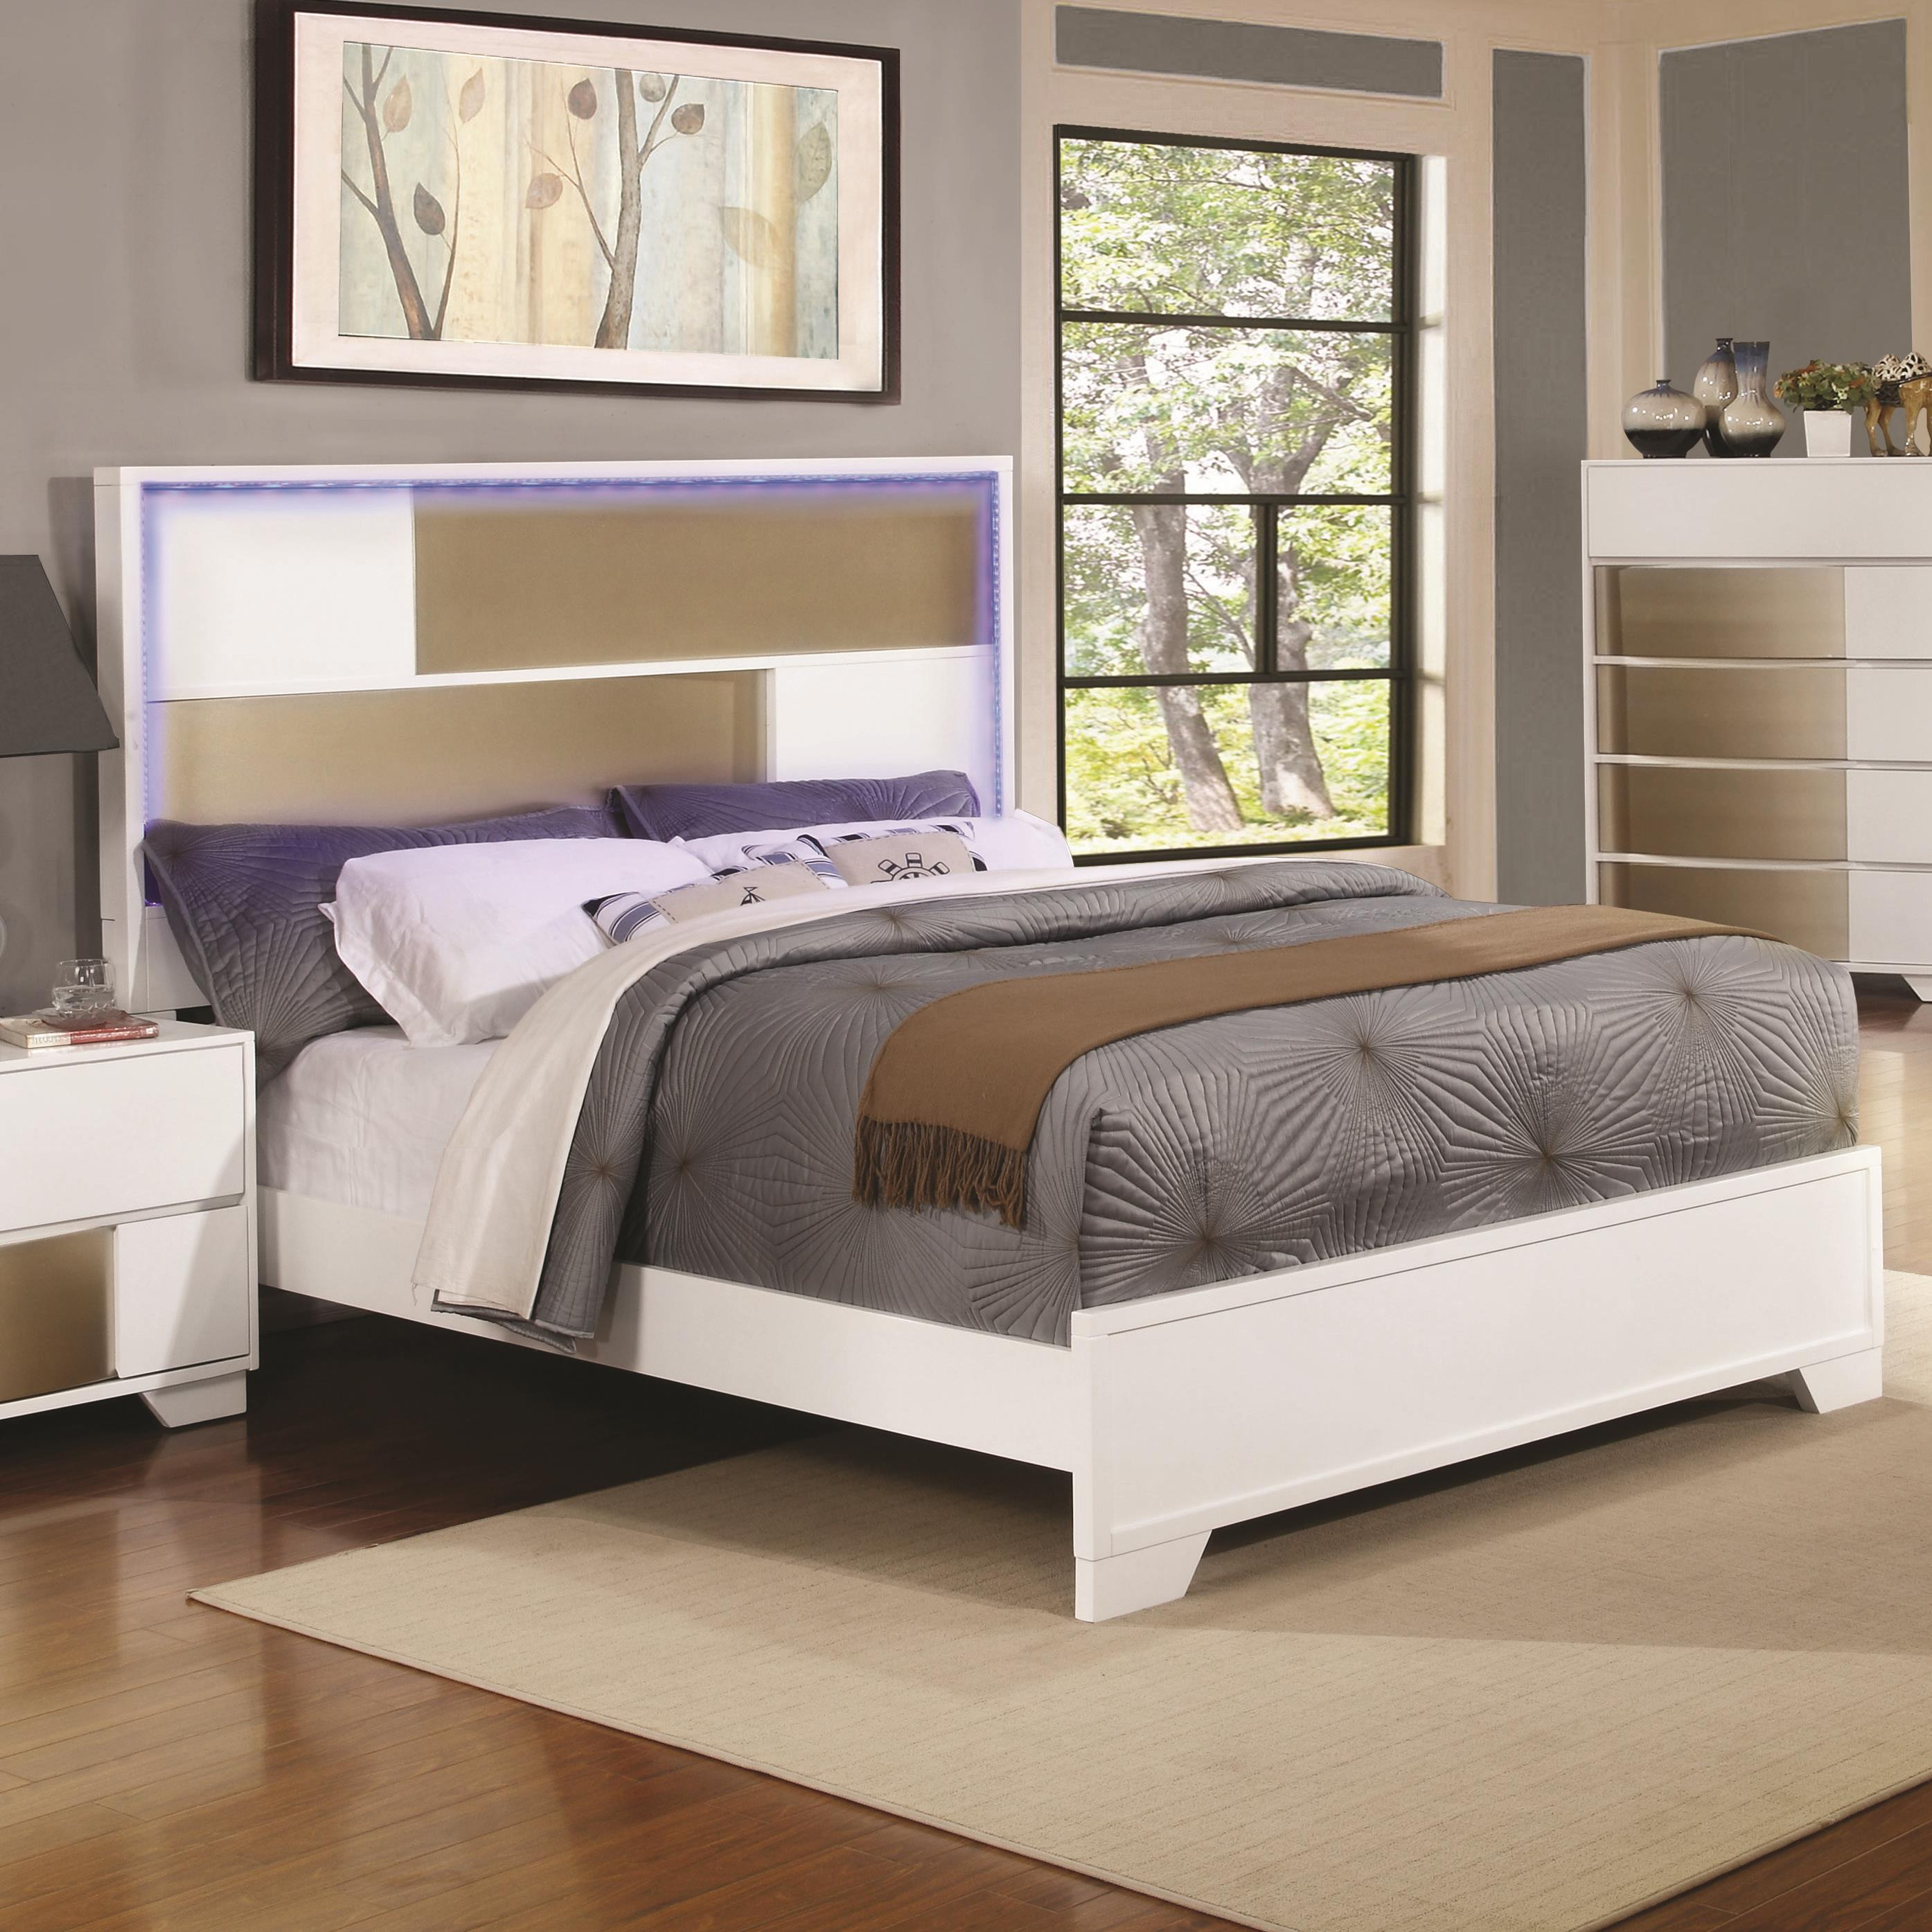 Queen 4 pc set, havering (bed, dresser, nightstand, mirror)